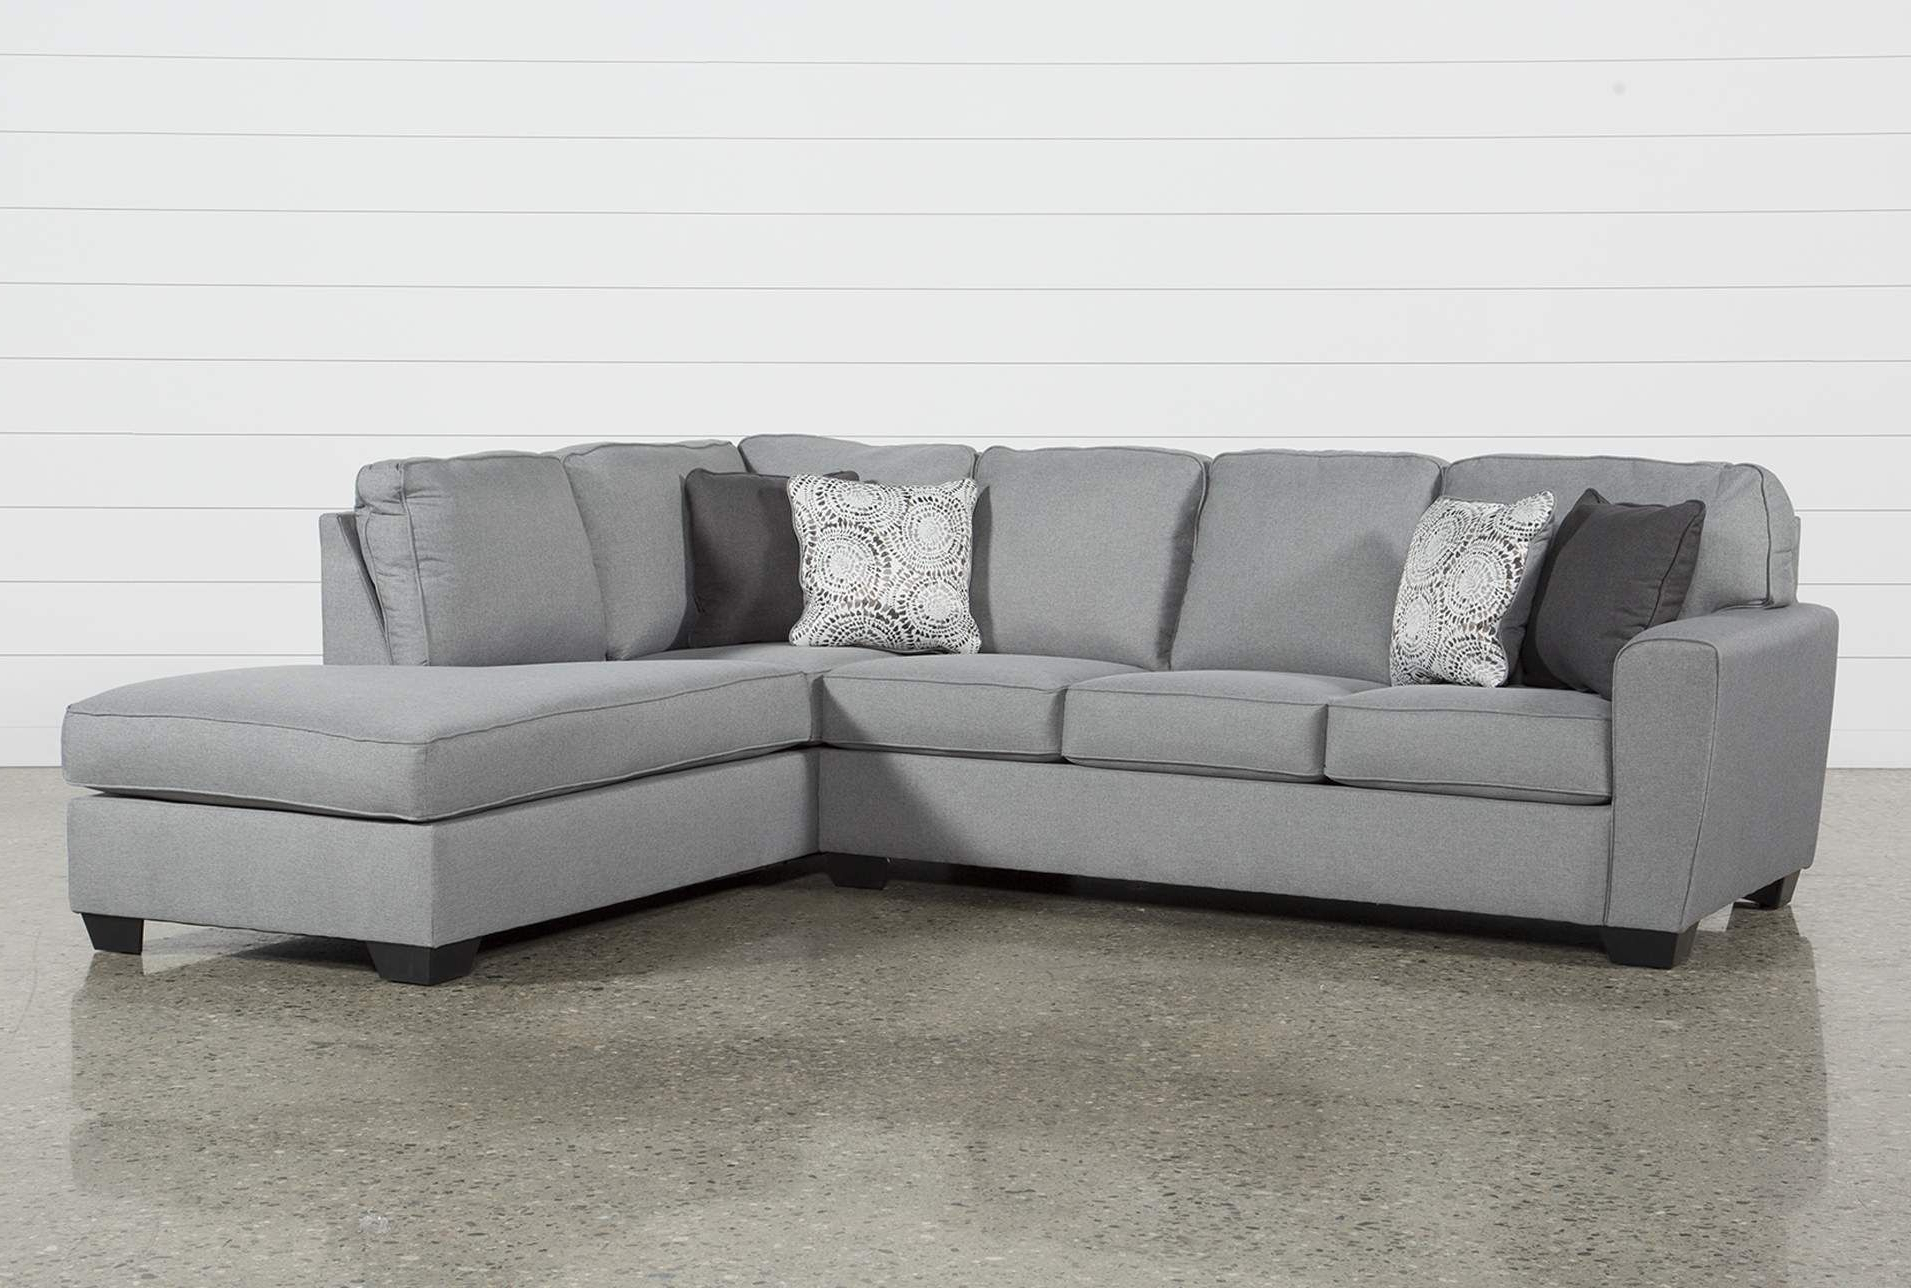 2019 Mcdade Ash 2 Piece Sectional W/raf Chaise (View 1 of 20)